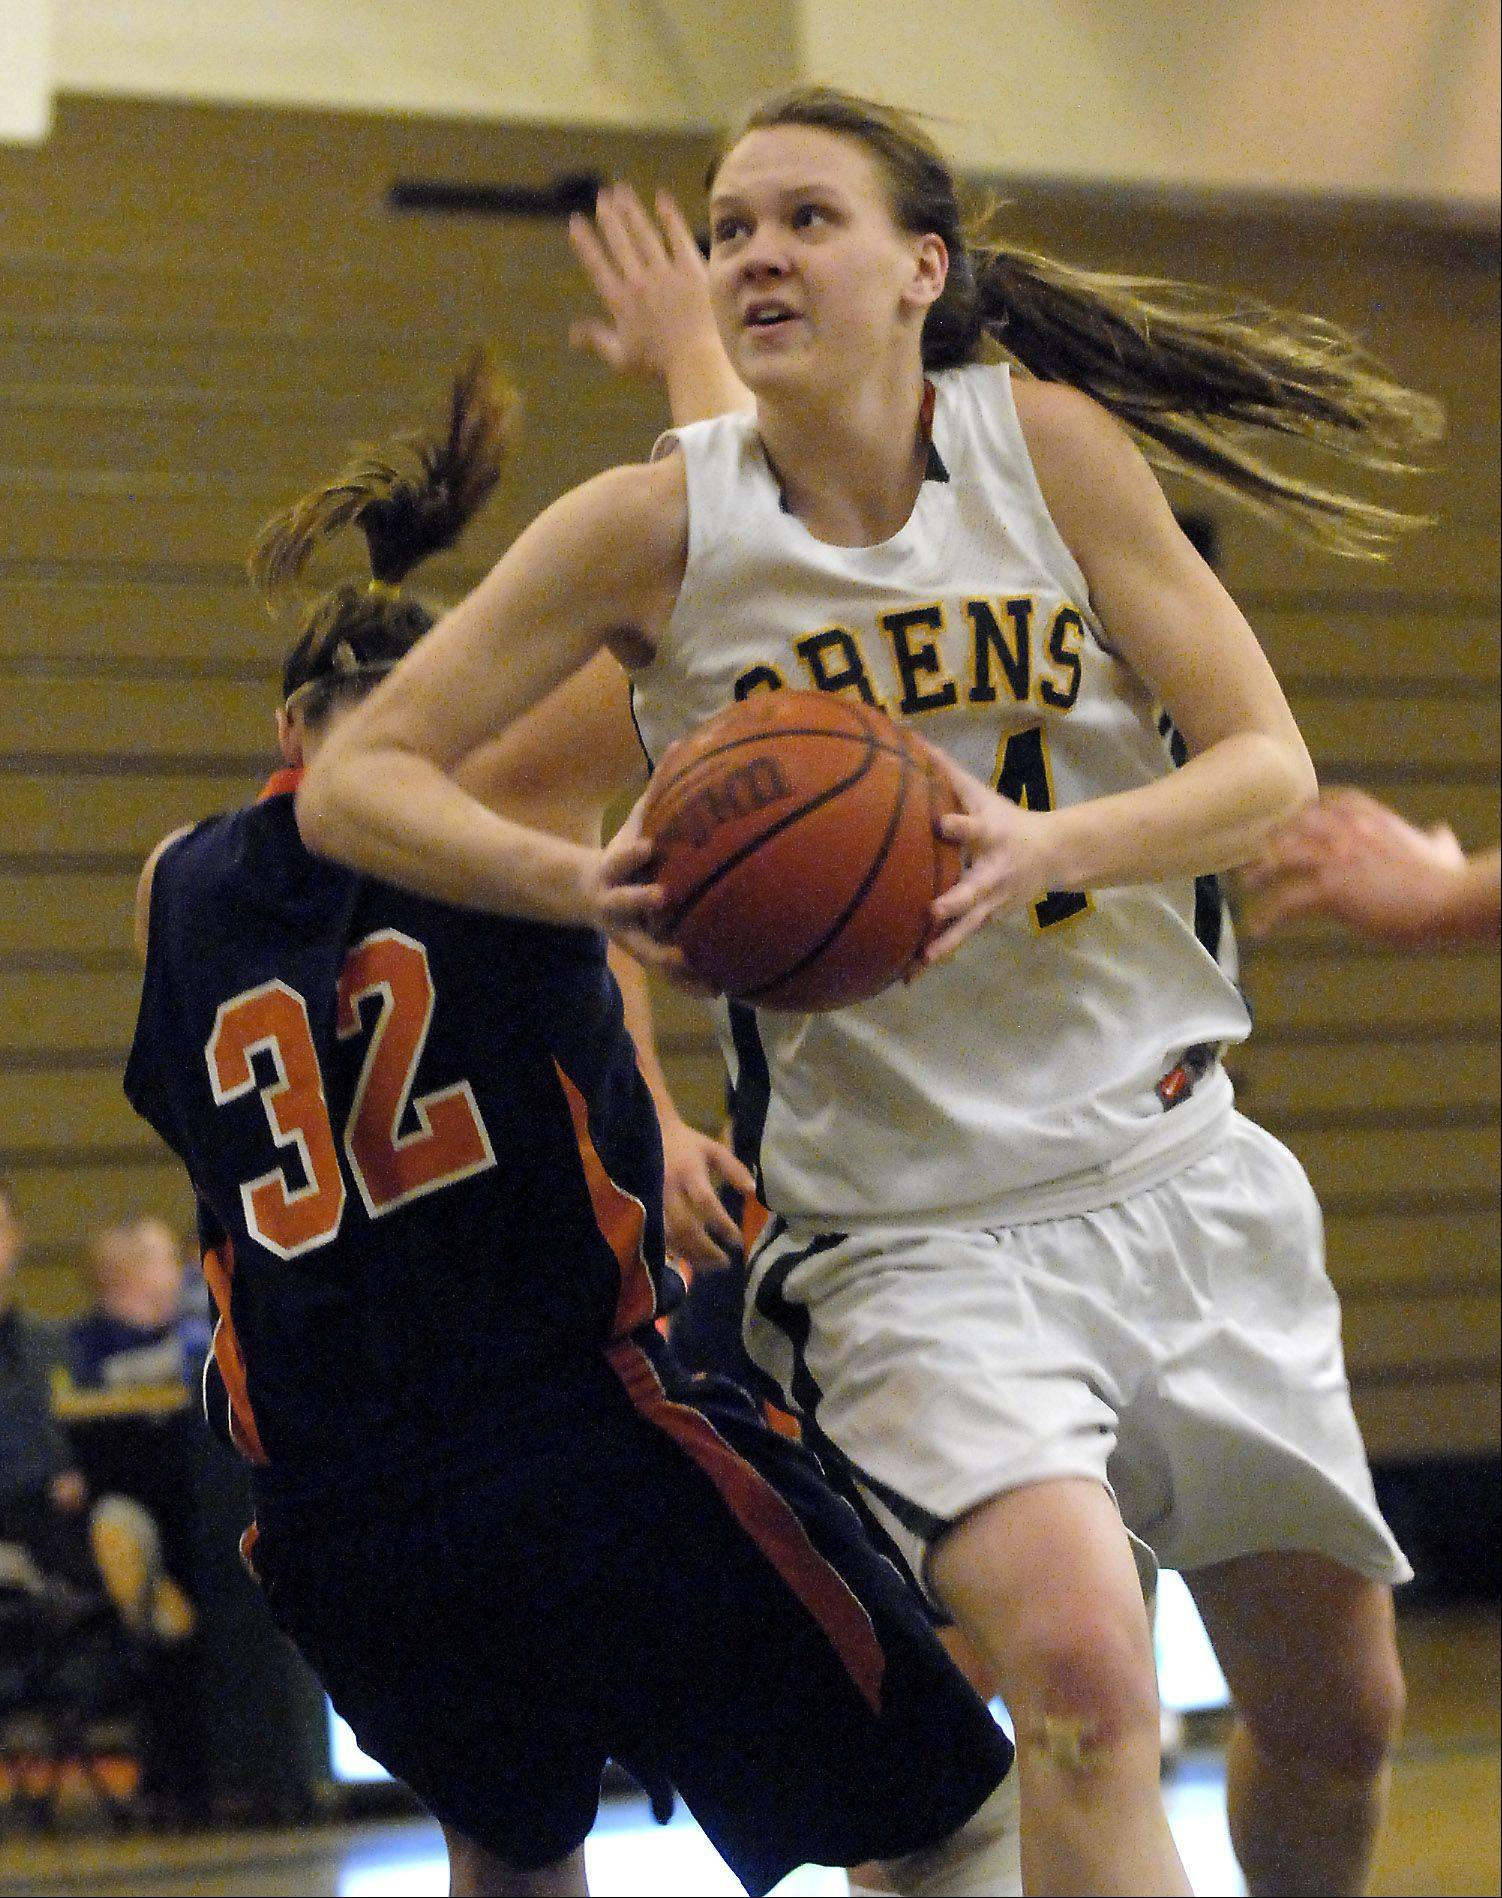 Courtney Lindfors, who played her senior season at Elk Grove High School after Driscoll closed, has decided to transfer to Loyola to continue her college basketball career. Lindfors was one of Wisconsin-Milwaukee's top players in her two seasons there.